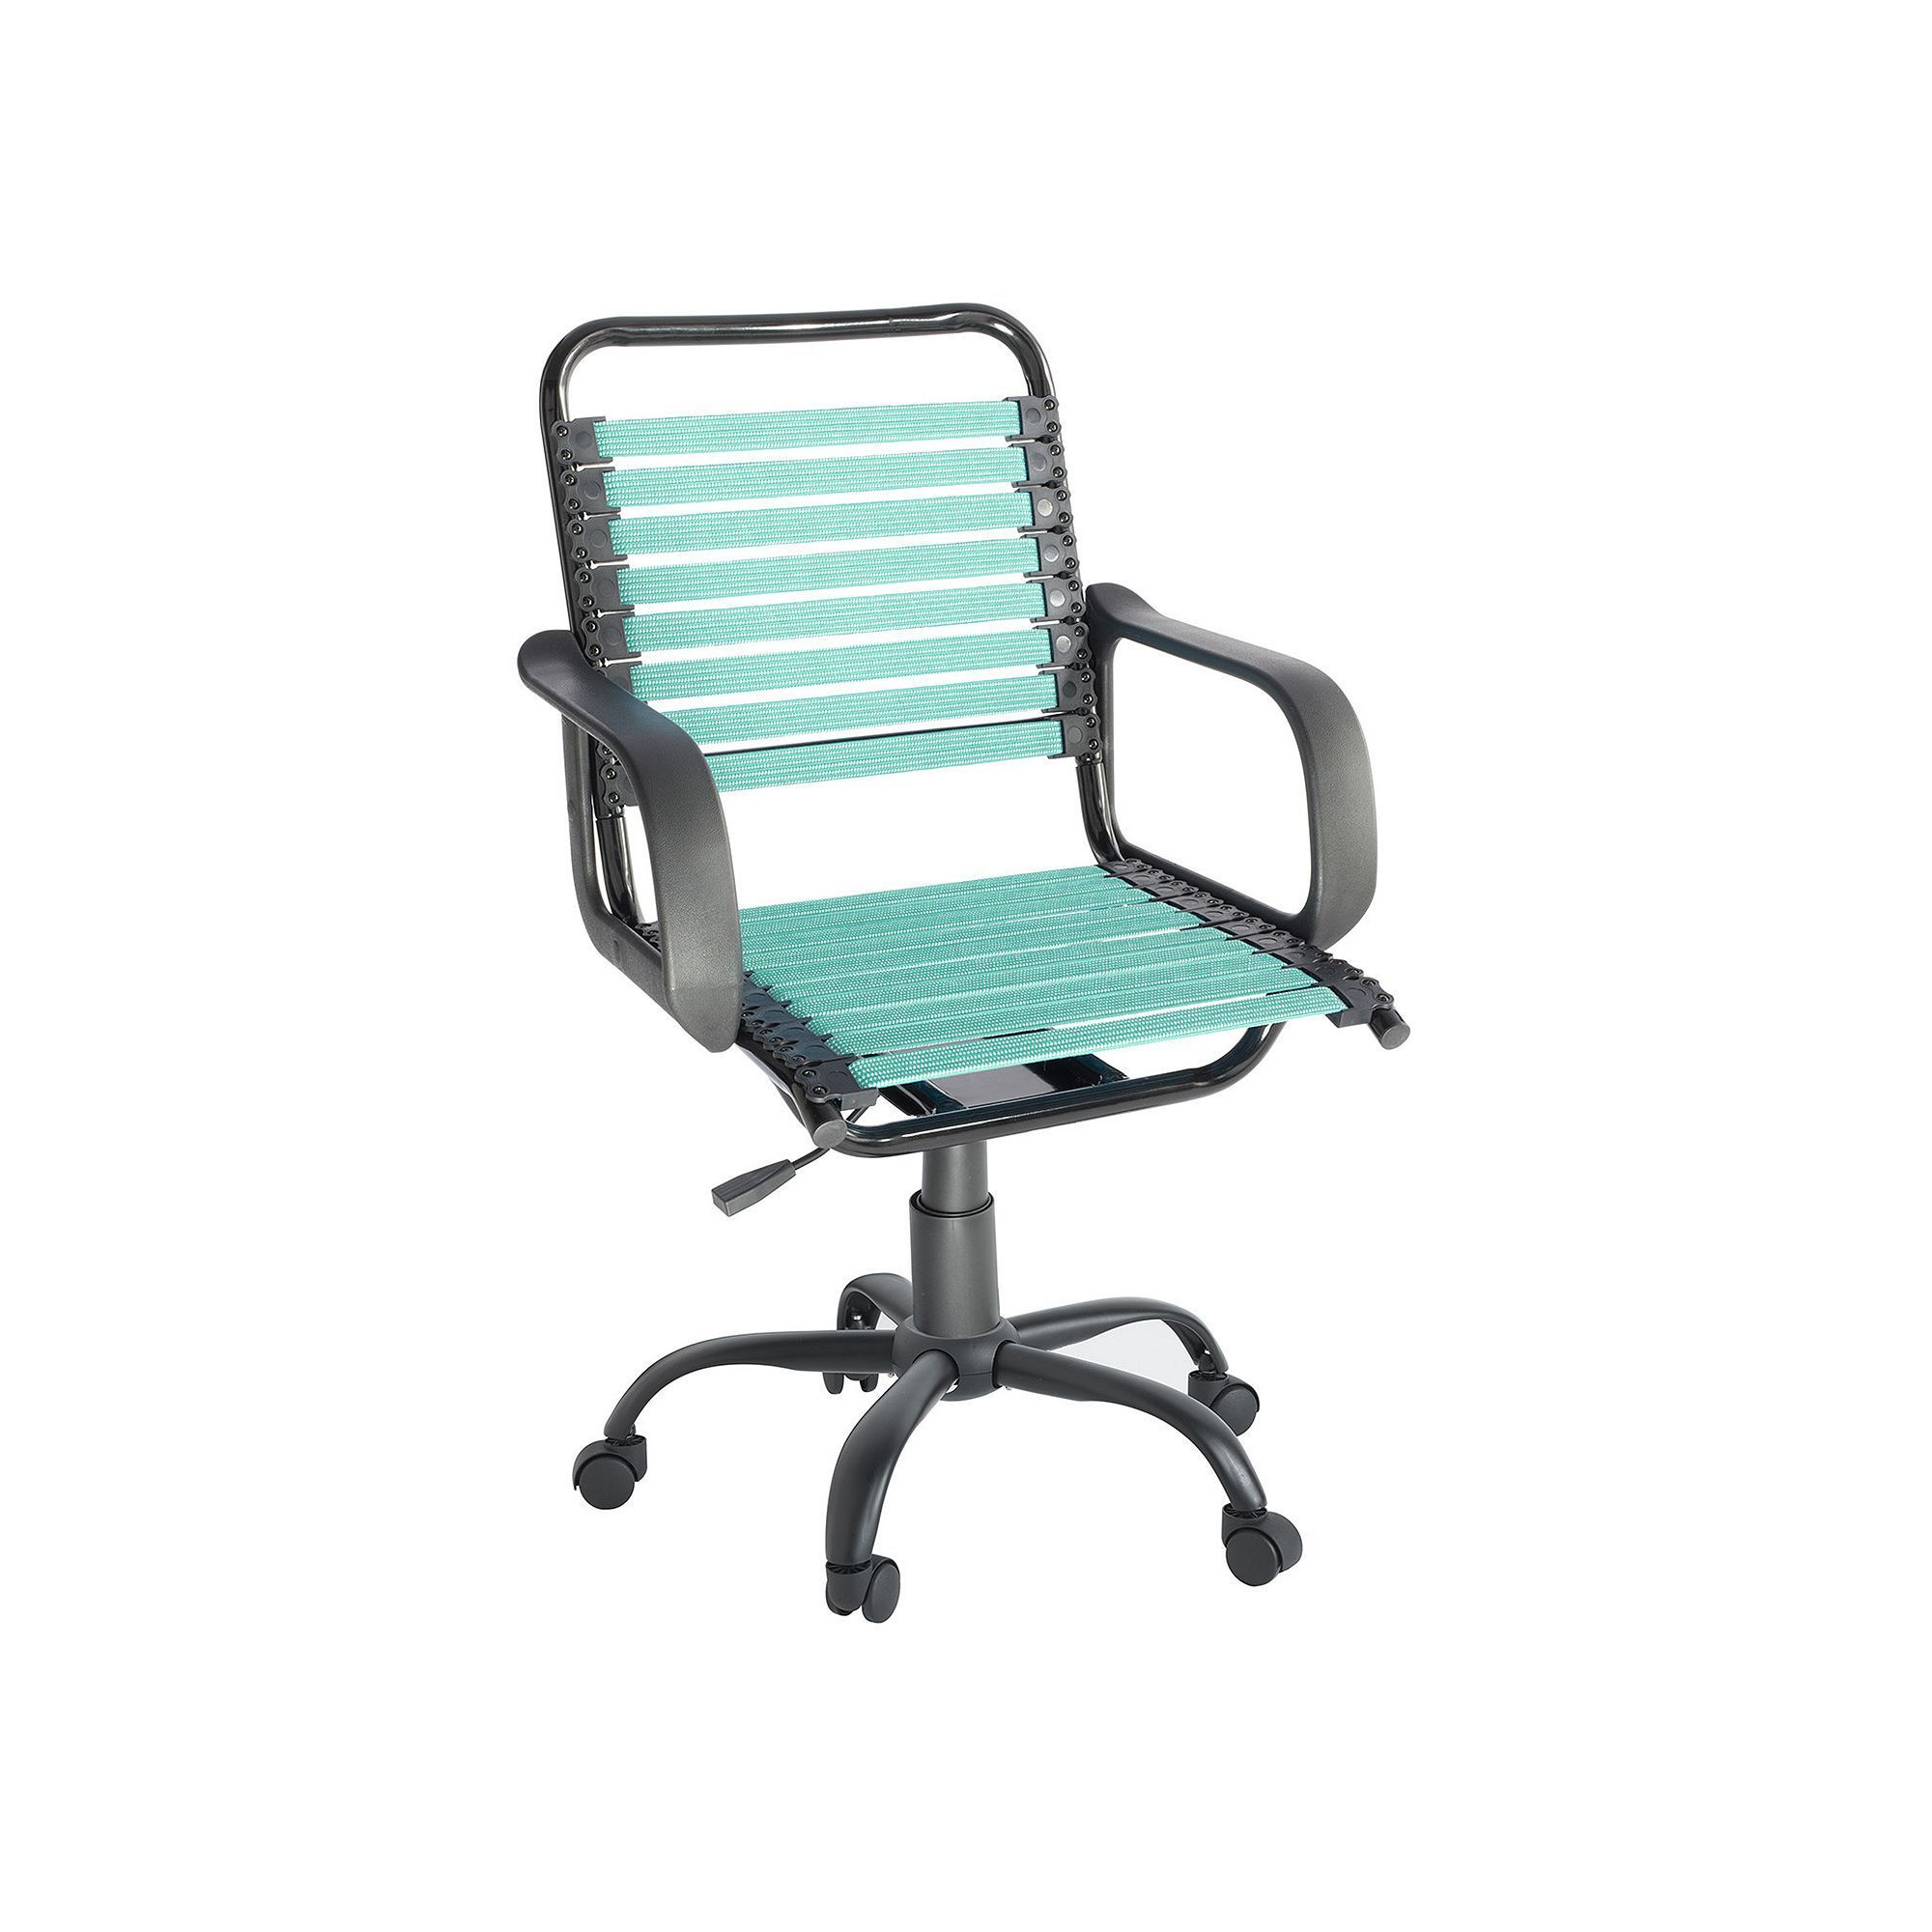 dining turquoise concepts patara desk era bright product plus aqua camira soho chair spider